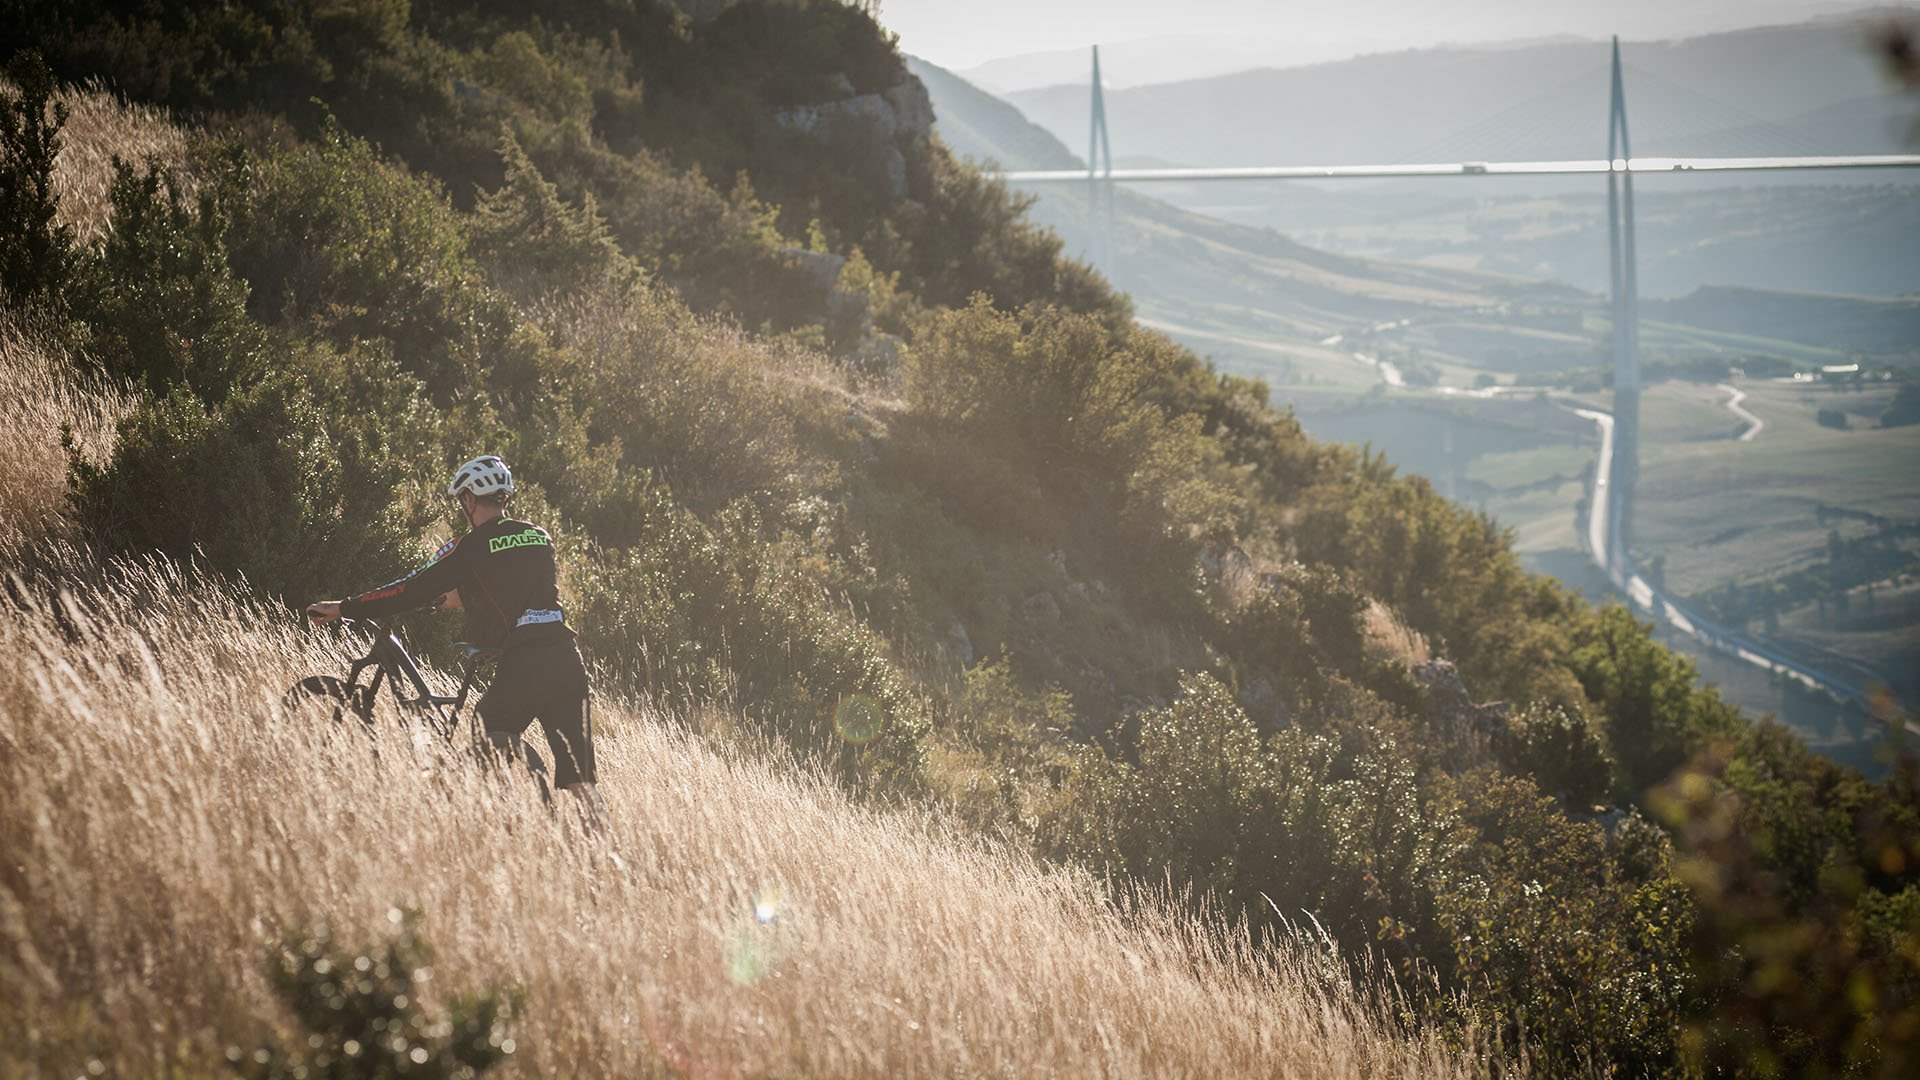 VTT enduro on the causse of Larzac in front of the viaduct of Millau